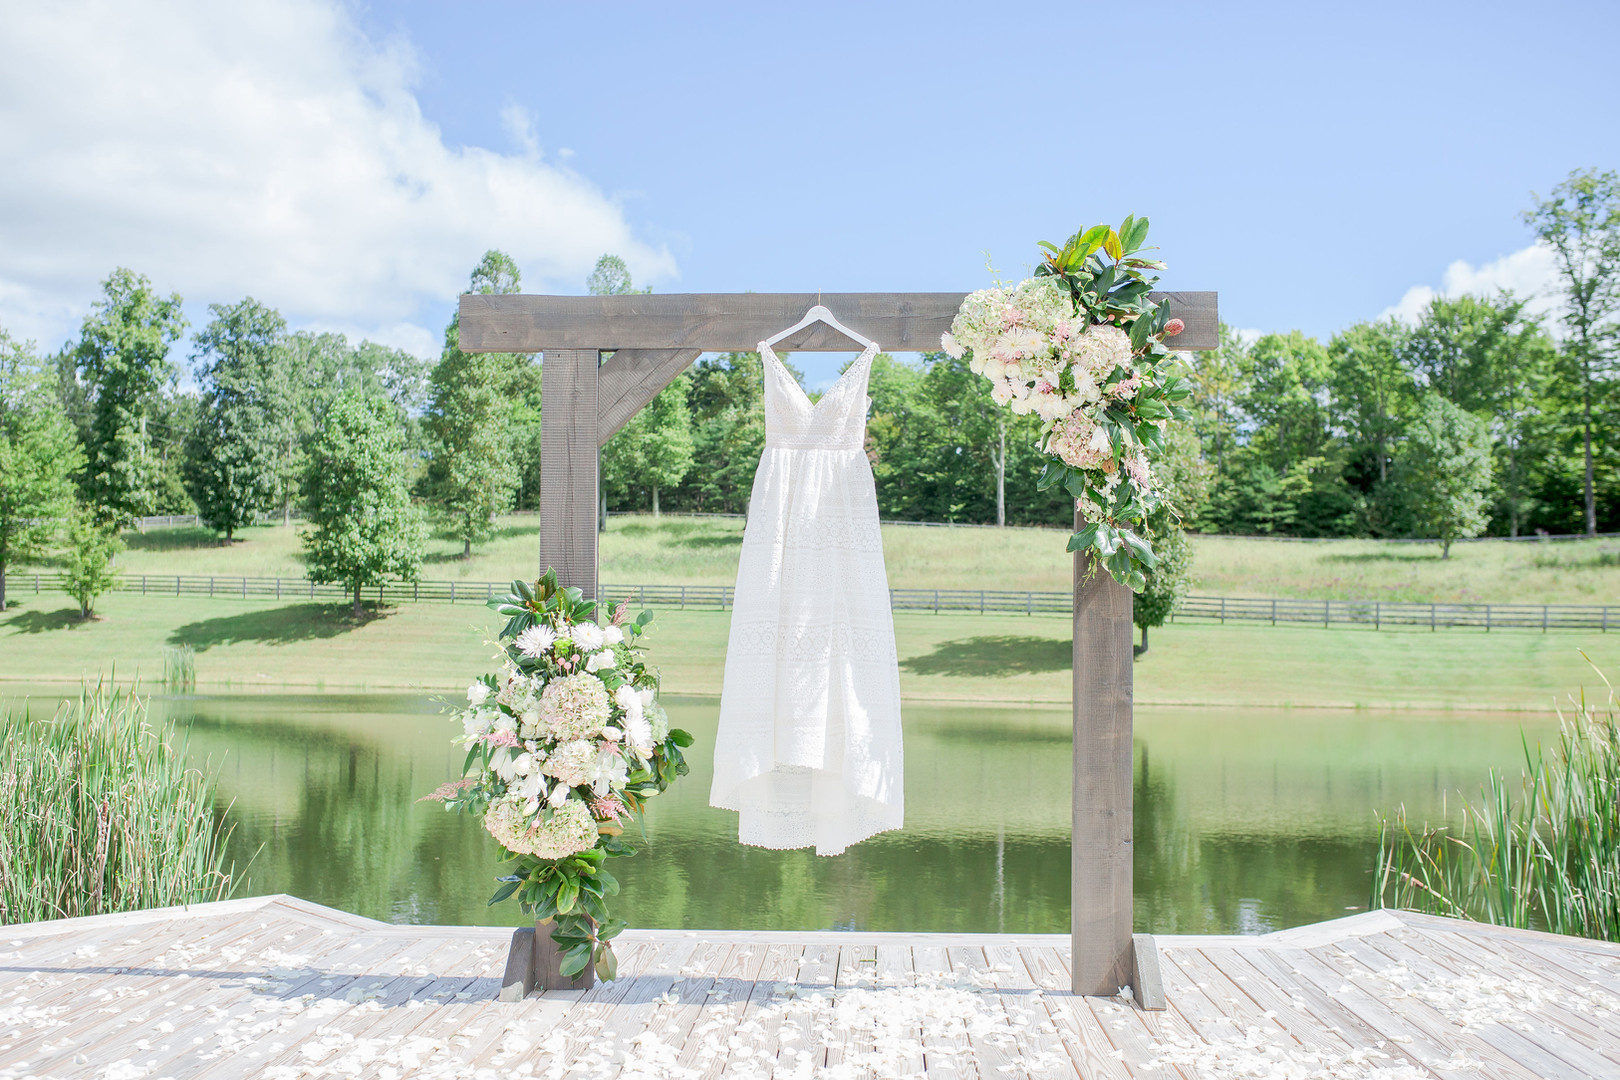 Bride's dress, surrounded by nature